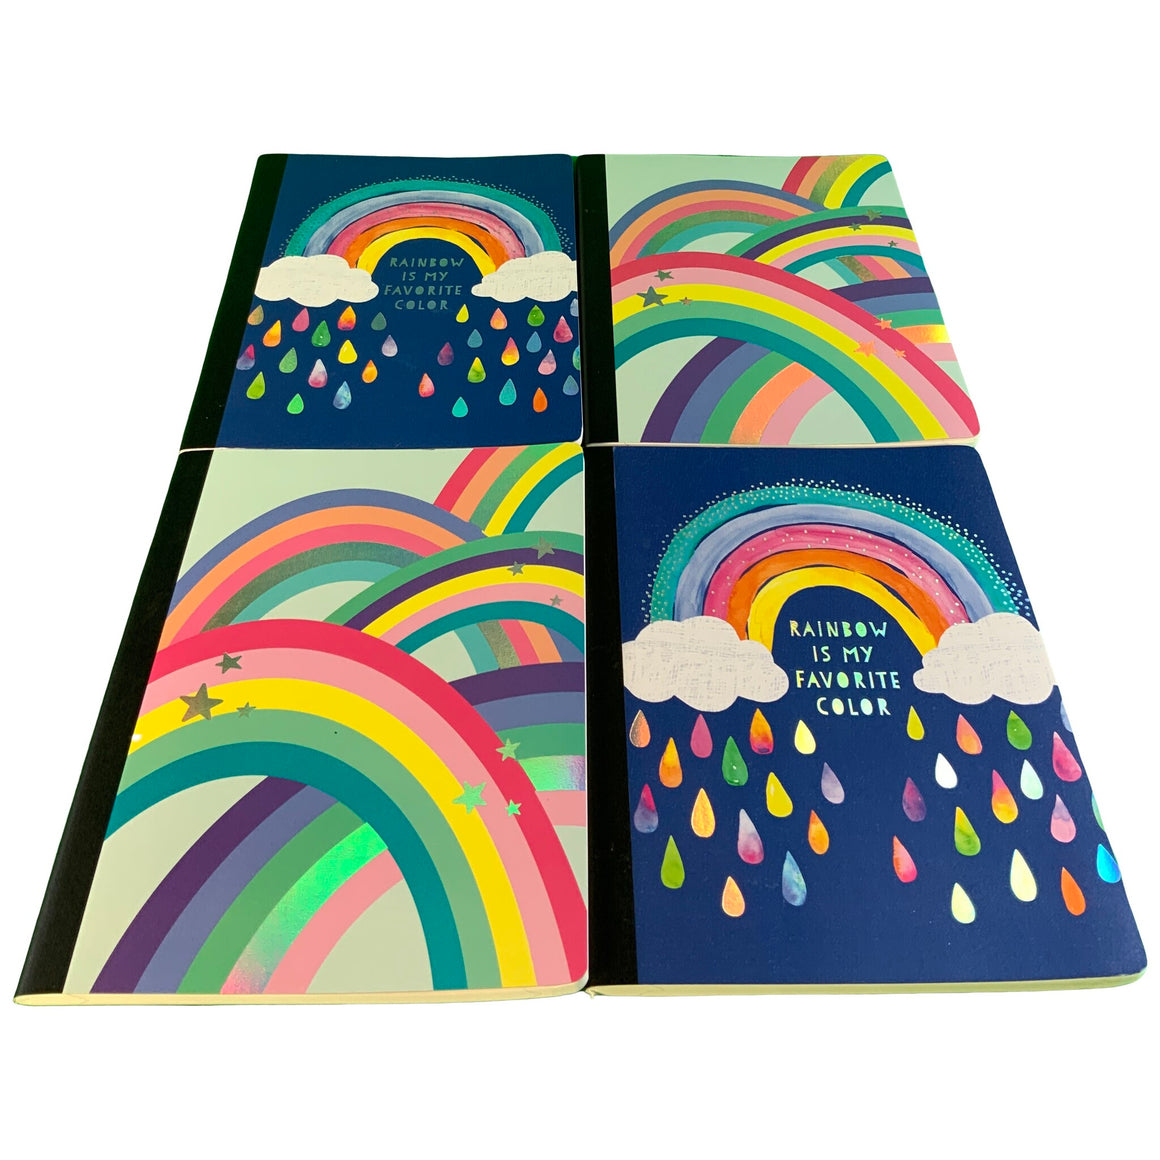 Composition Notebook - Rainbow Is My Favorite Color & Composition Notebook - Rainbow/Stars - Greenroom